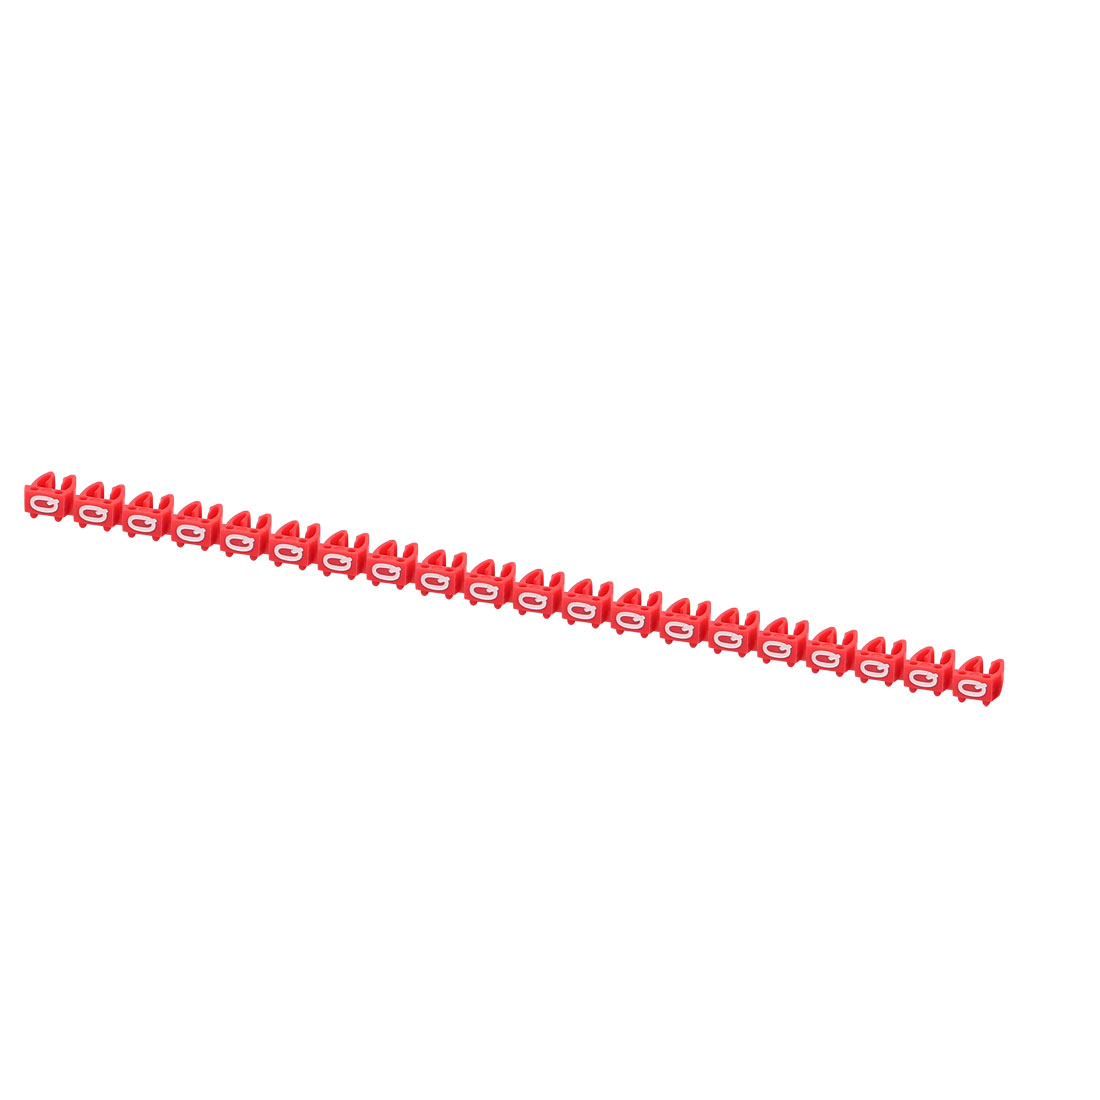 20 Pcs Letters Q Network Cable Labels Markers Red for 4.0-6.0mm Dia Cable